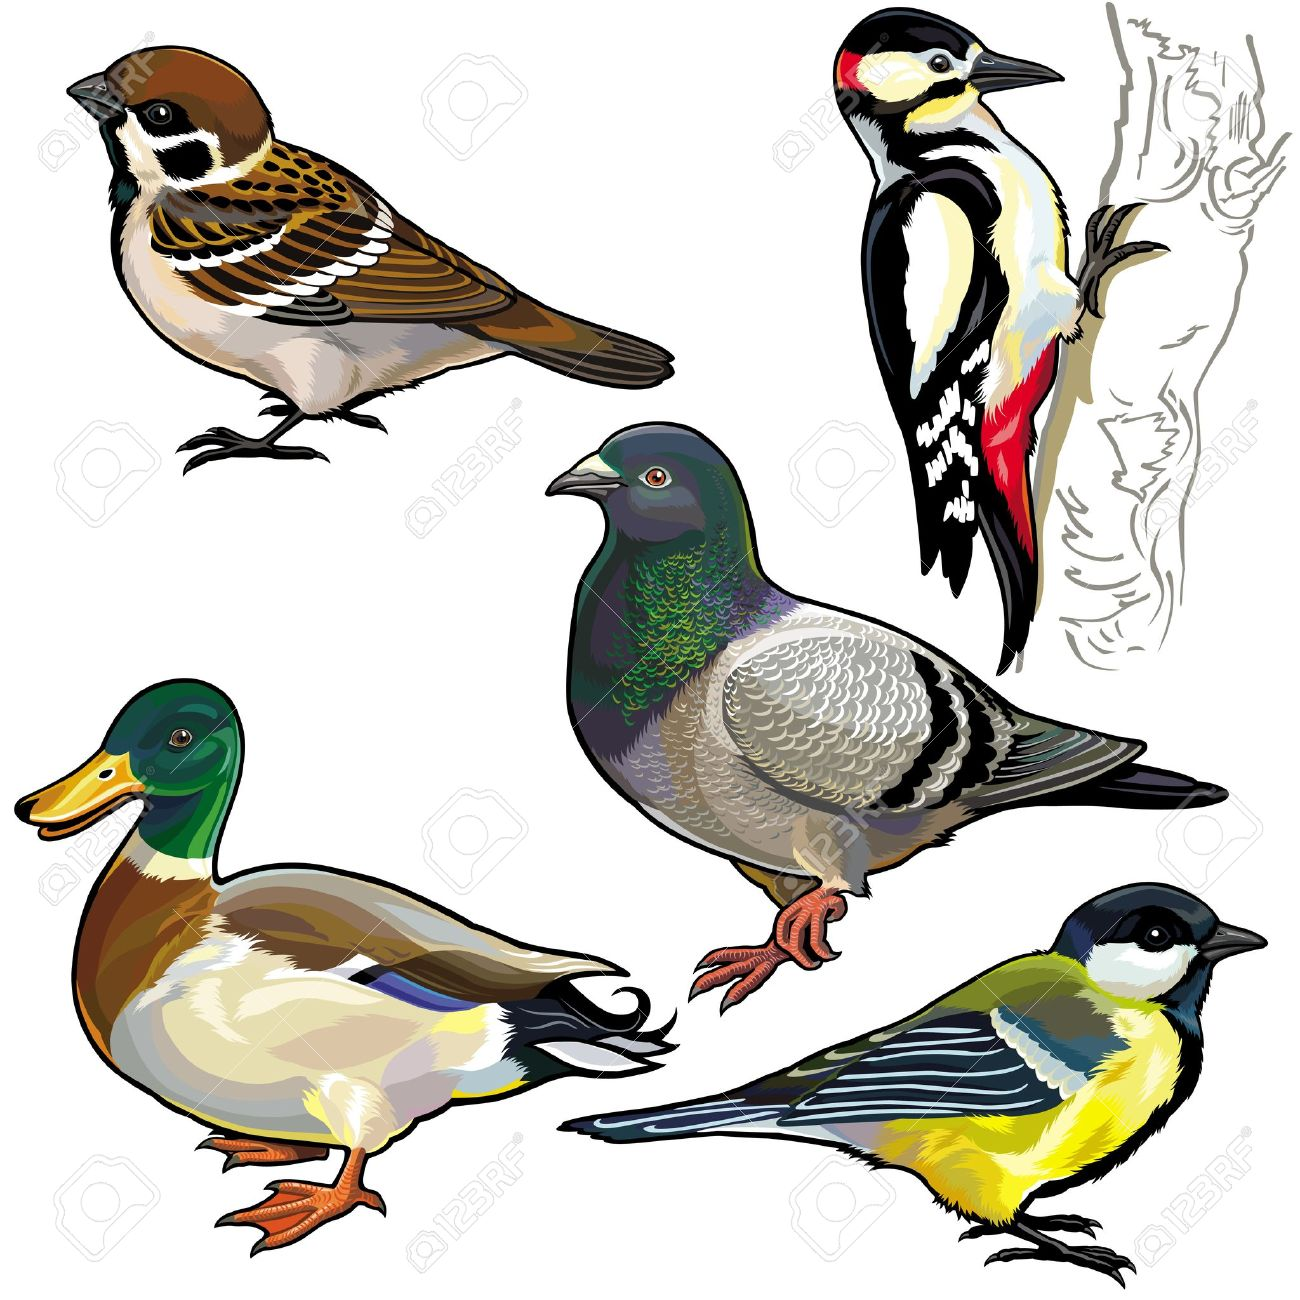 10,938 Pigeon Stock Vector Illustration And Royalty Free Pigeon.